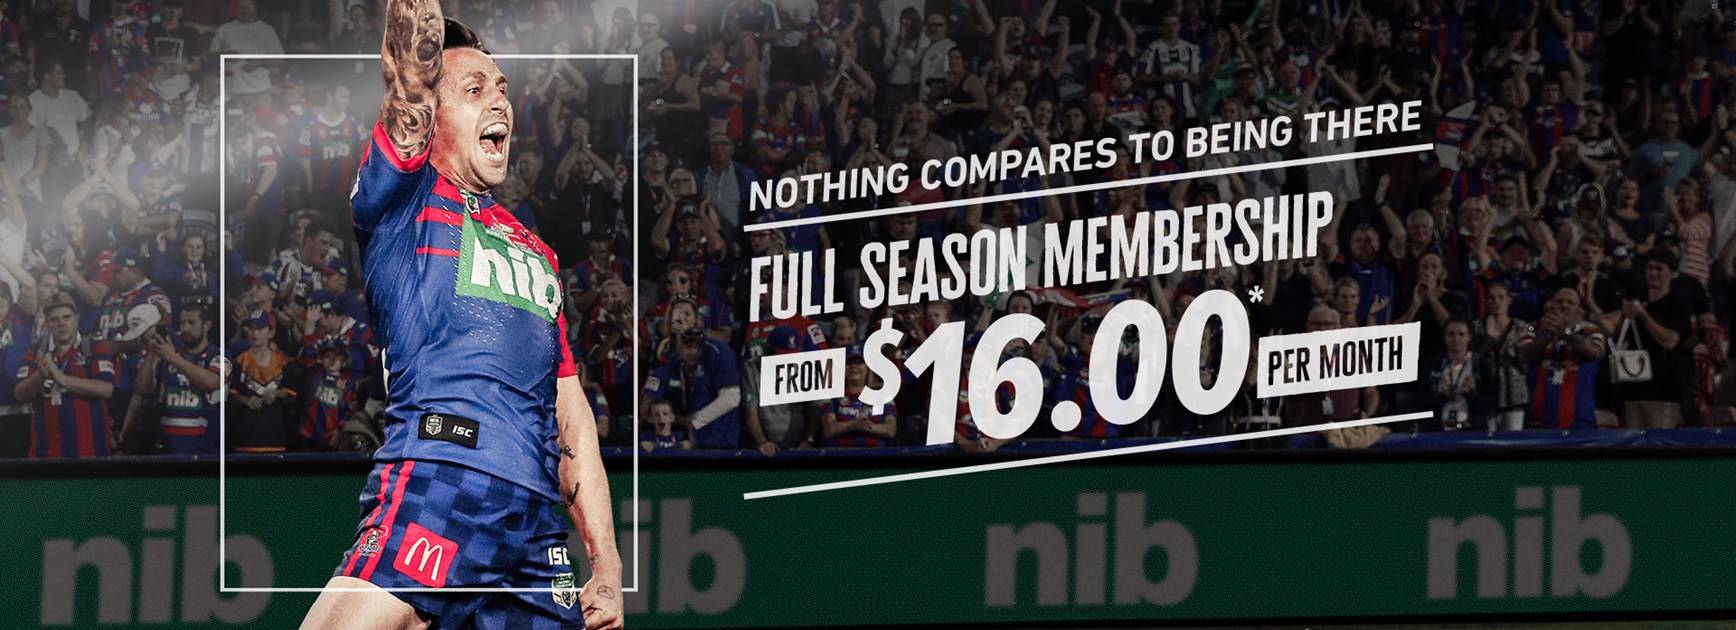 Launched! 2019 memberships now on sale